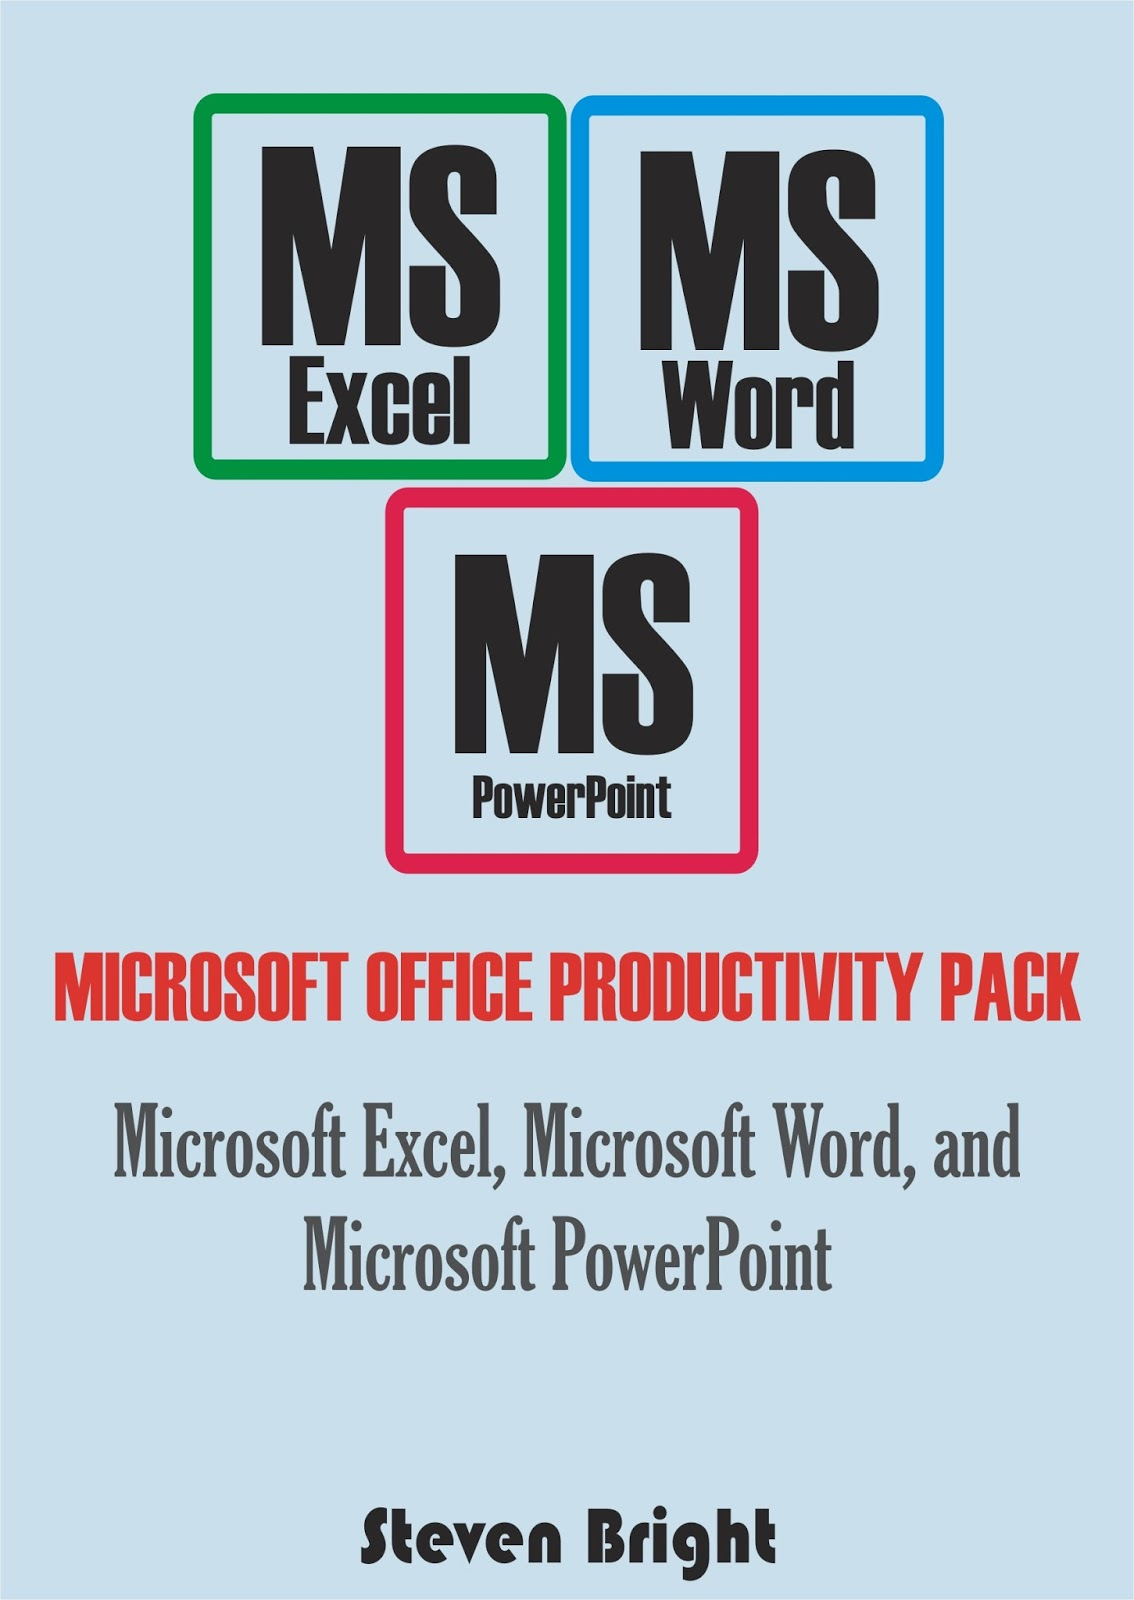 microsoft promotion strategies Vince_360x400 vince olson operations manager 360x400-troy troy courtney  producer maureen_360x400 maureen holt strategic planner jeff_360x400.